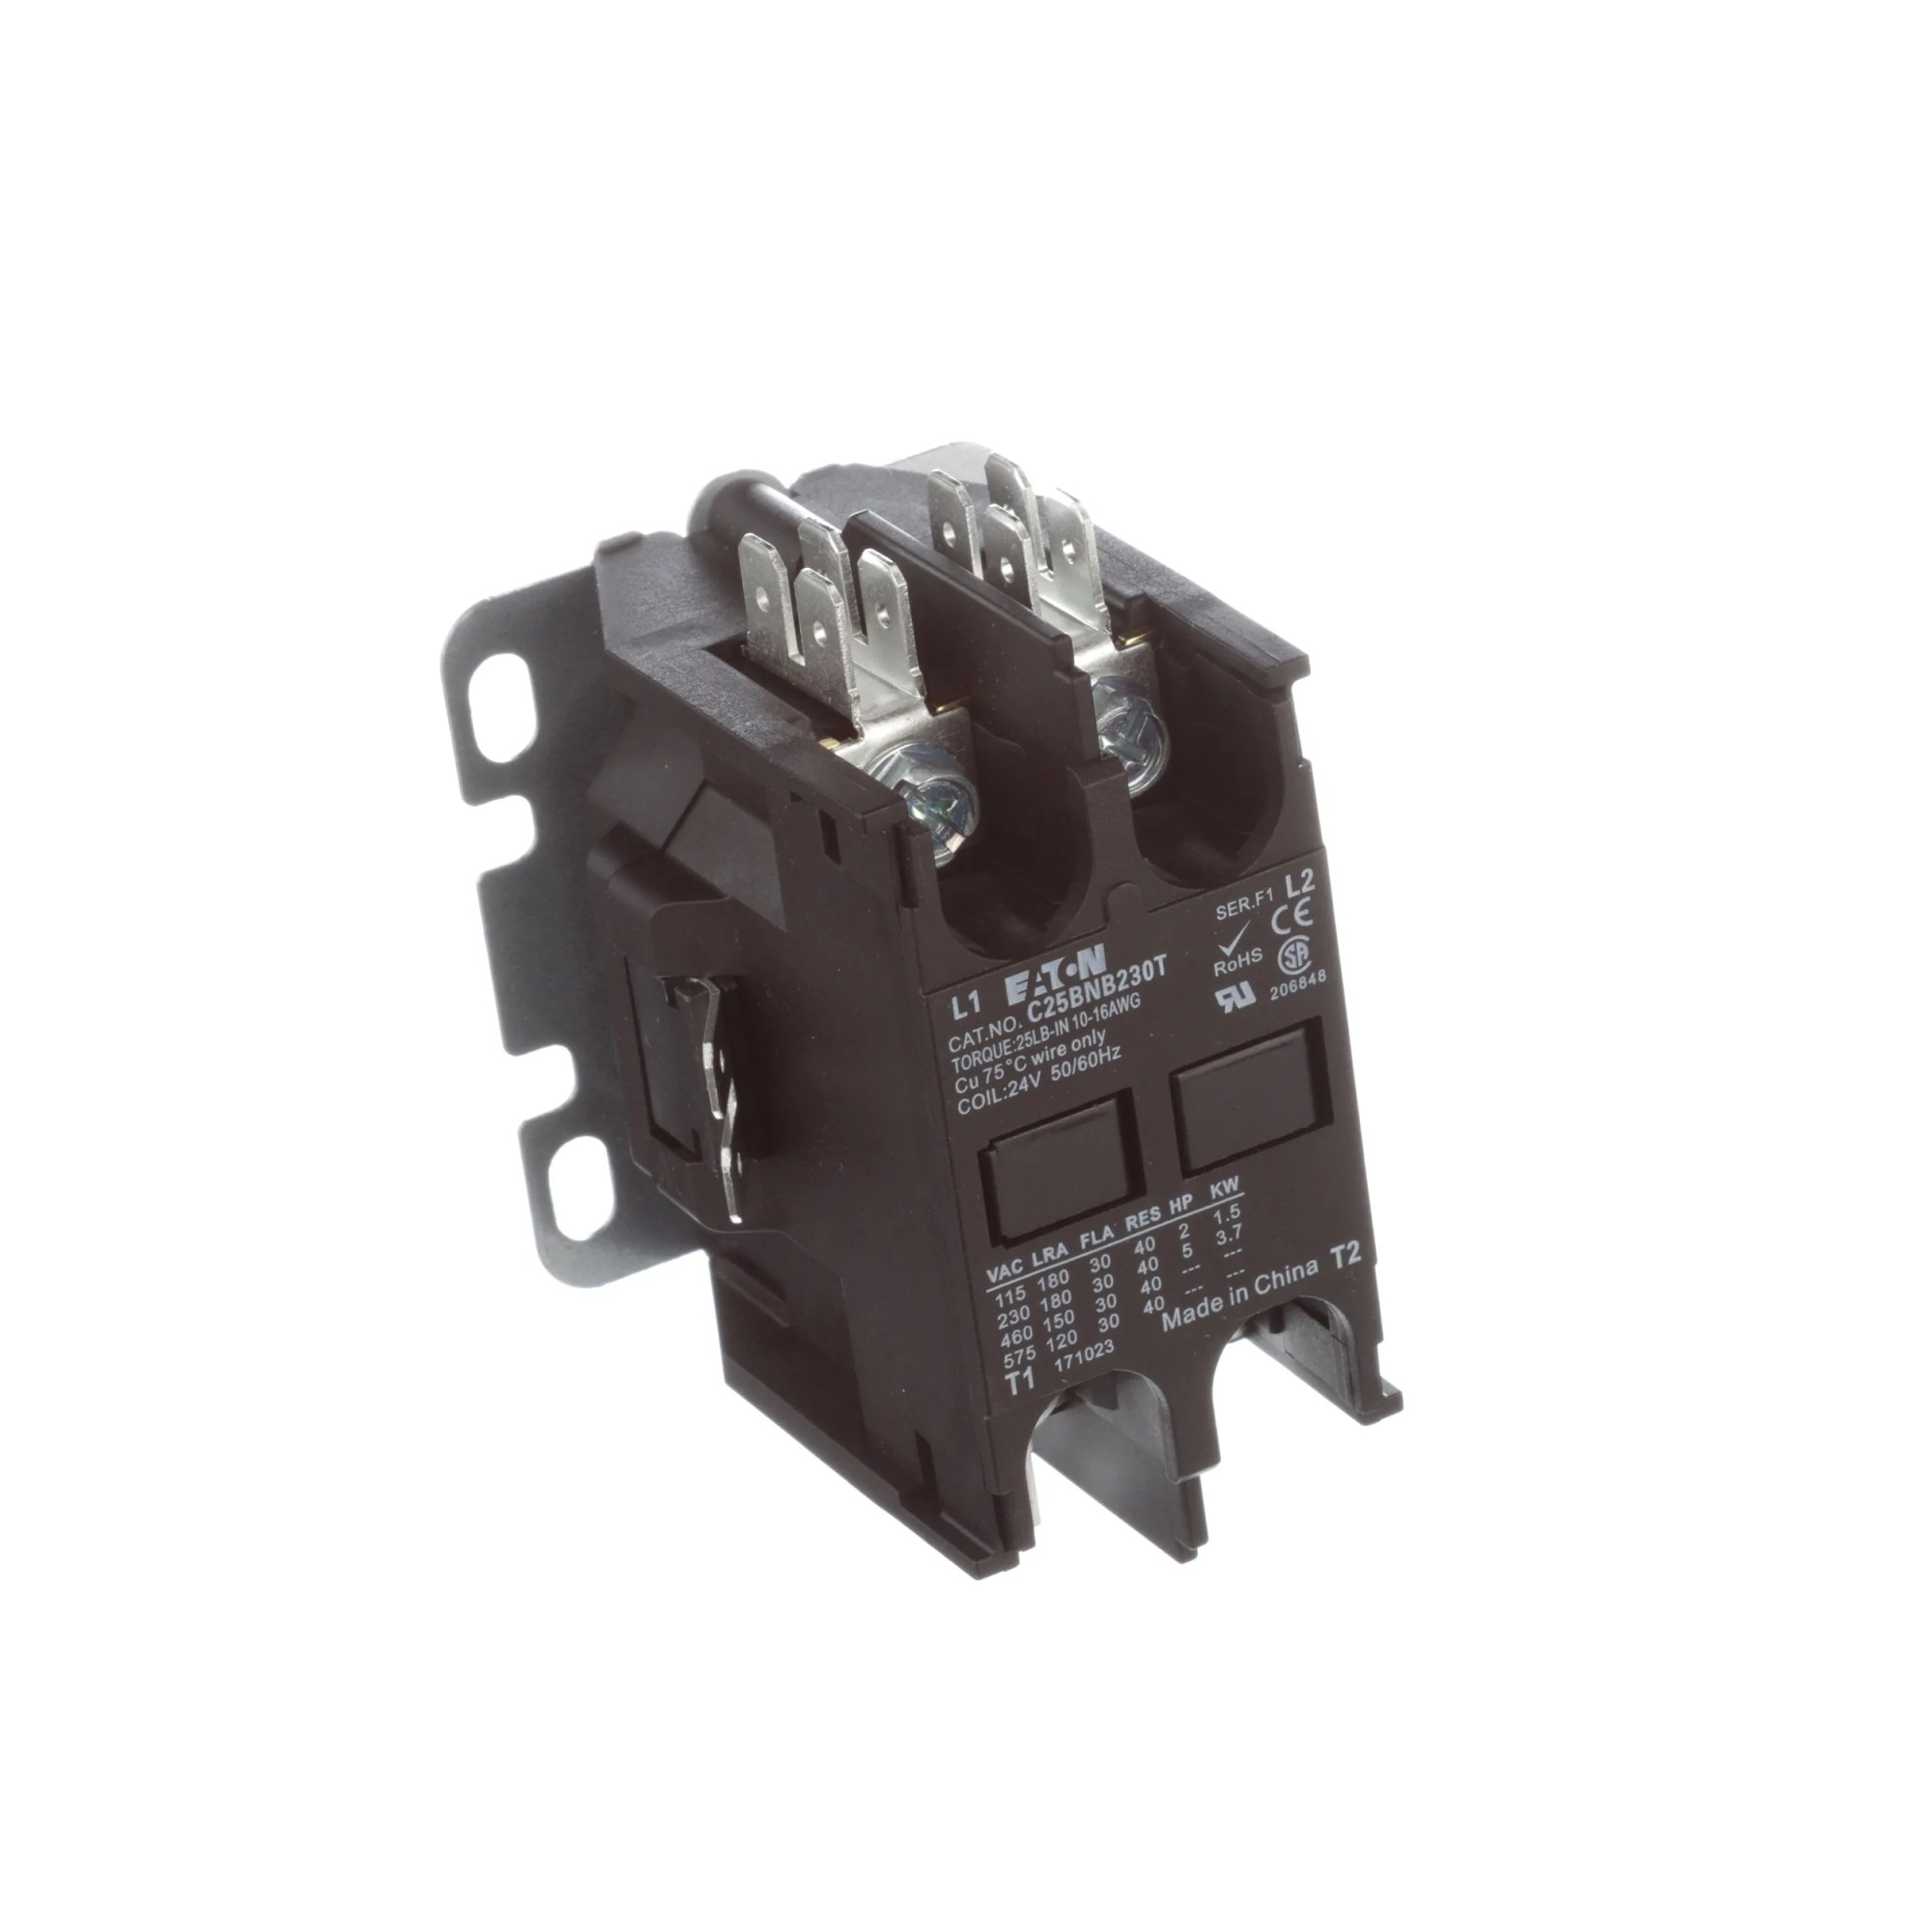 hight resolution of eaton cutler hammer c25bnb230t contactor dp 2 pole 30a 24vac coil allied electronics automation